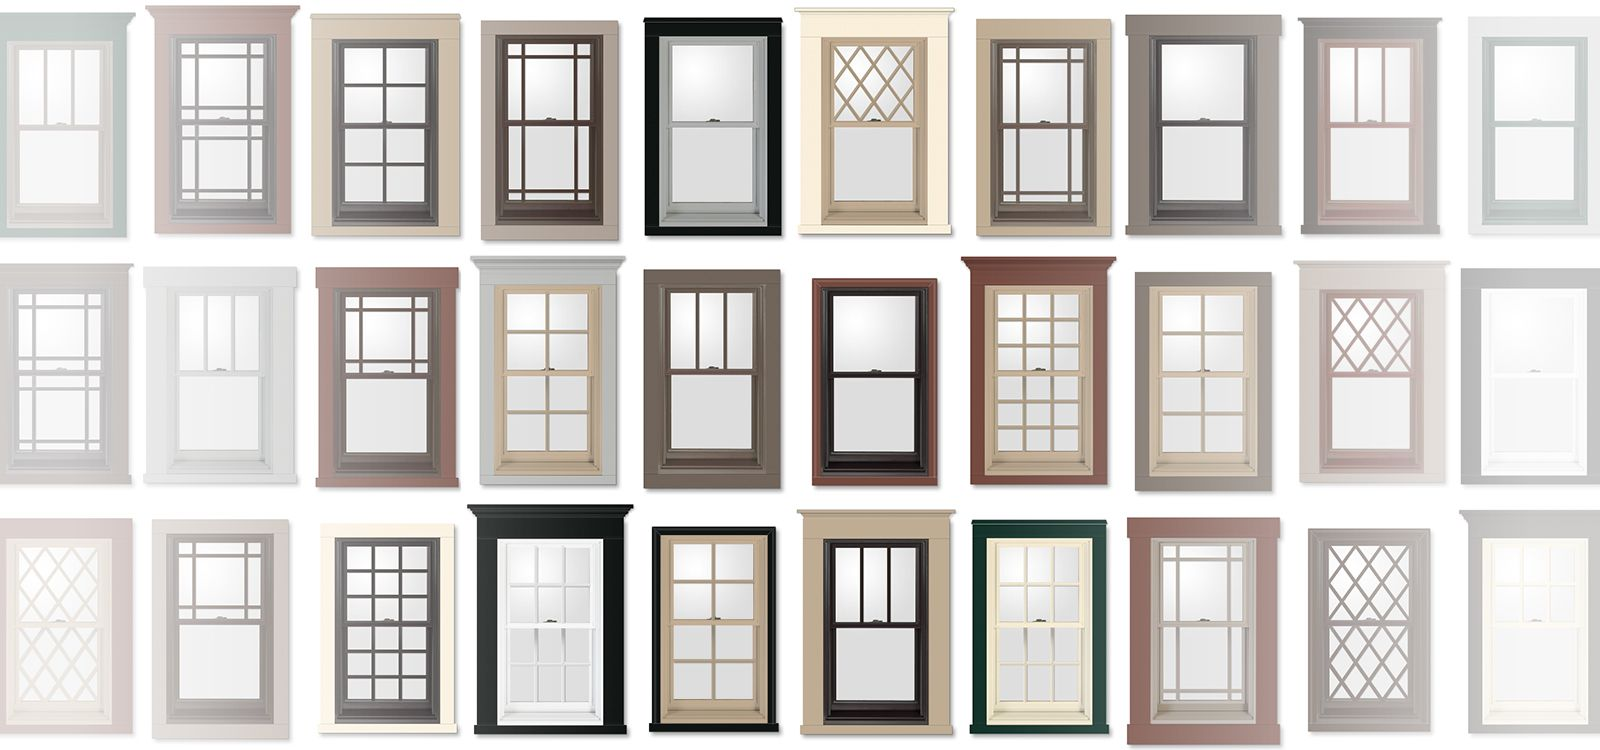 Andersen windows and patio doors 1 in quality and used for Window design exterior